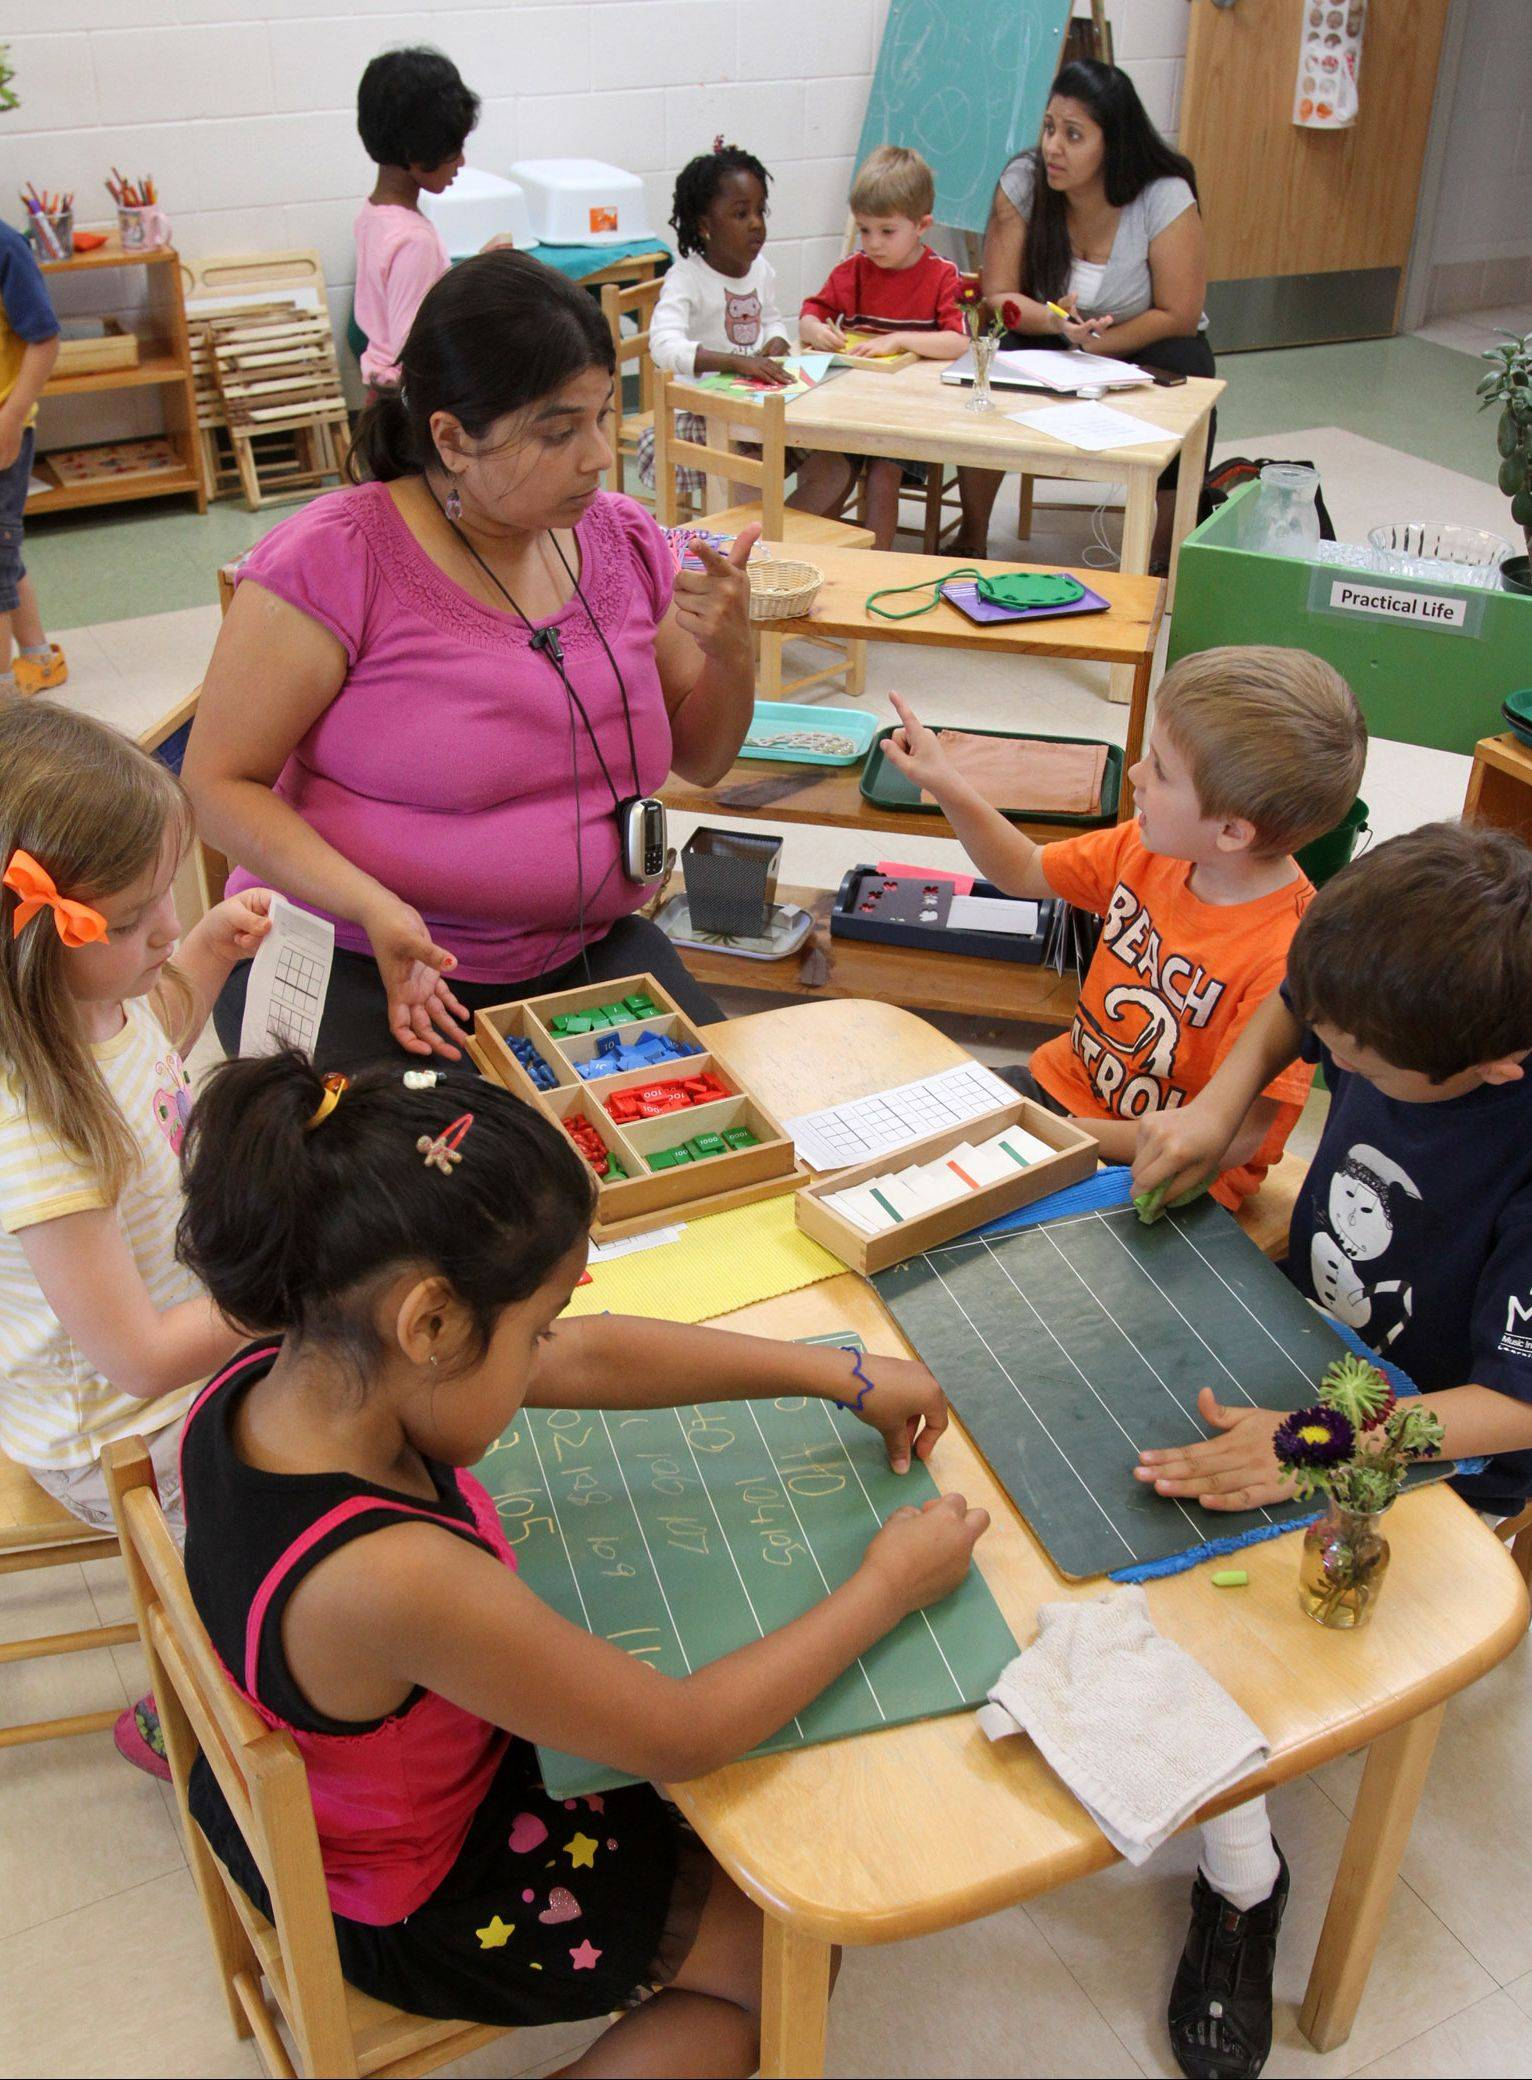 Bharini Shah, directs 3-to 6-year-old students at the Montessori school in Wheeling. Classrooms for 3-to 6-year-olds are the most popular at the school.